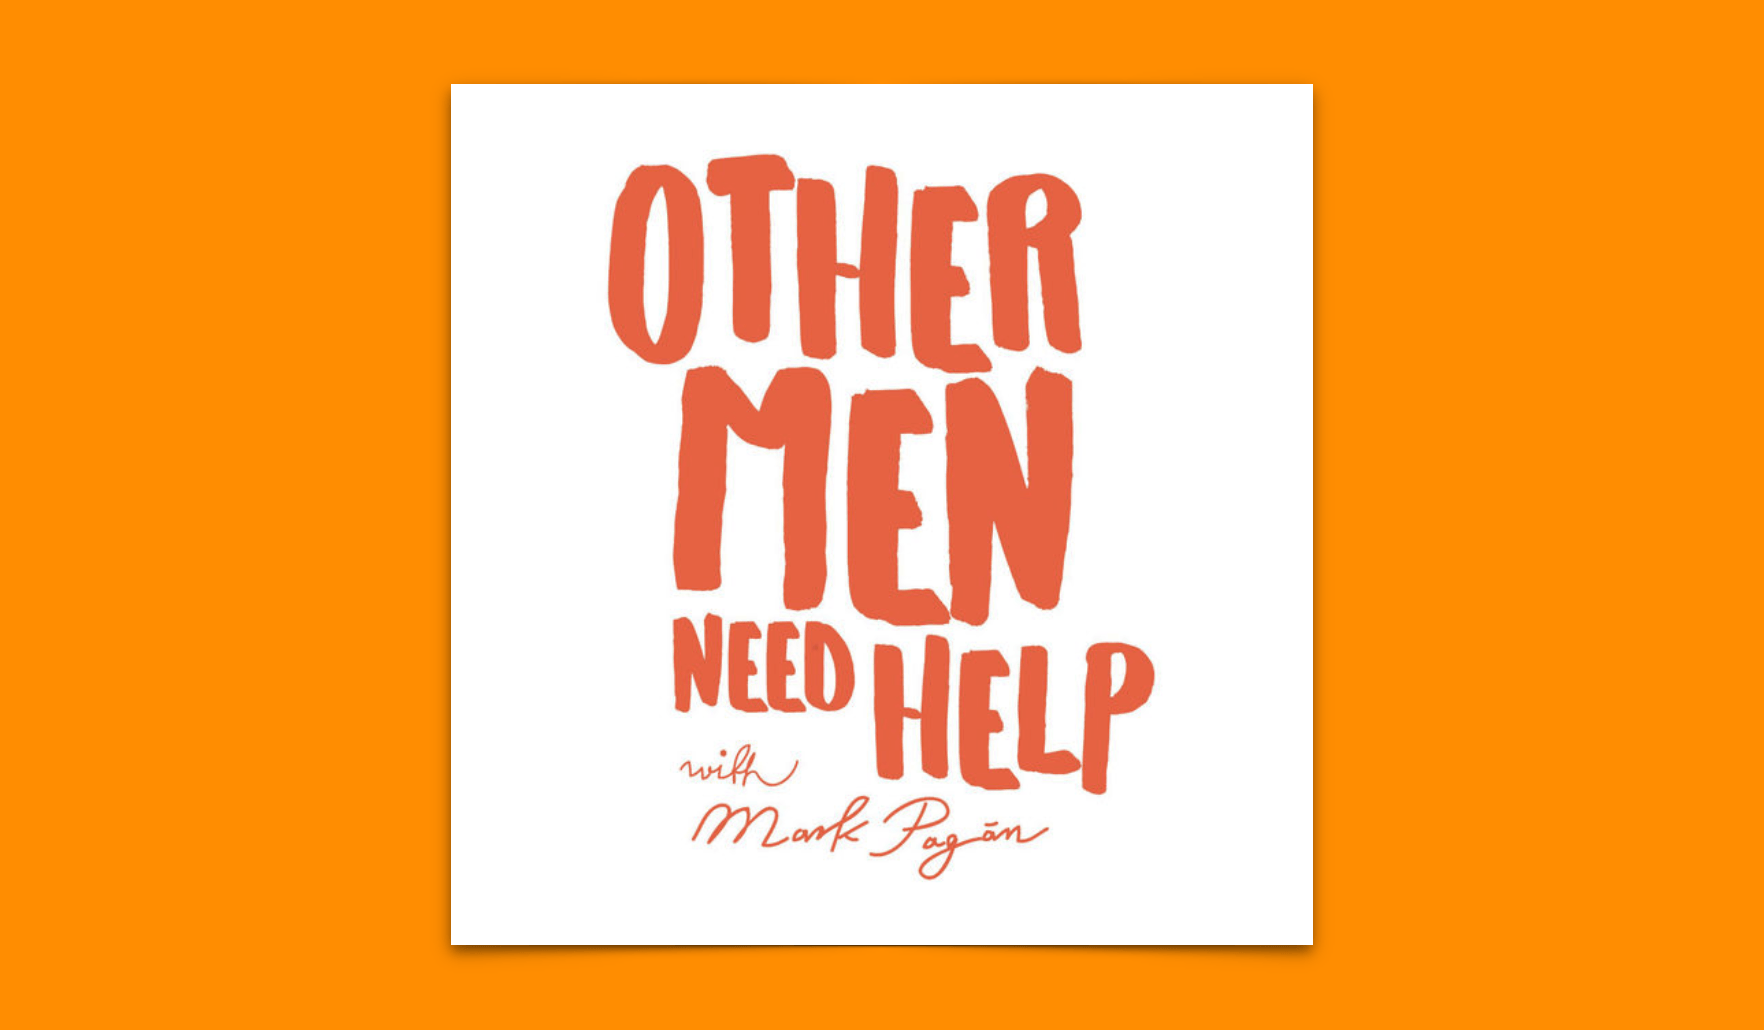 Other Men Need Help Logo